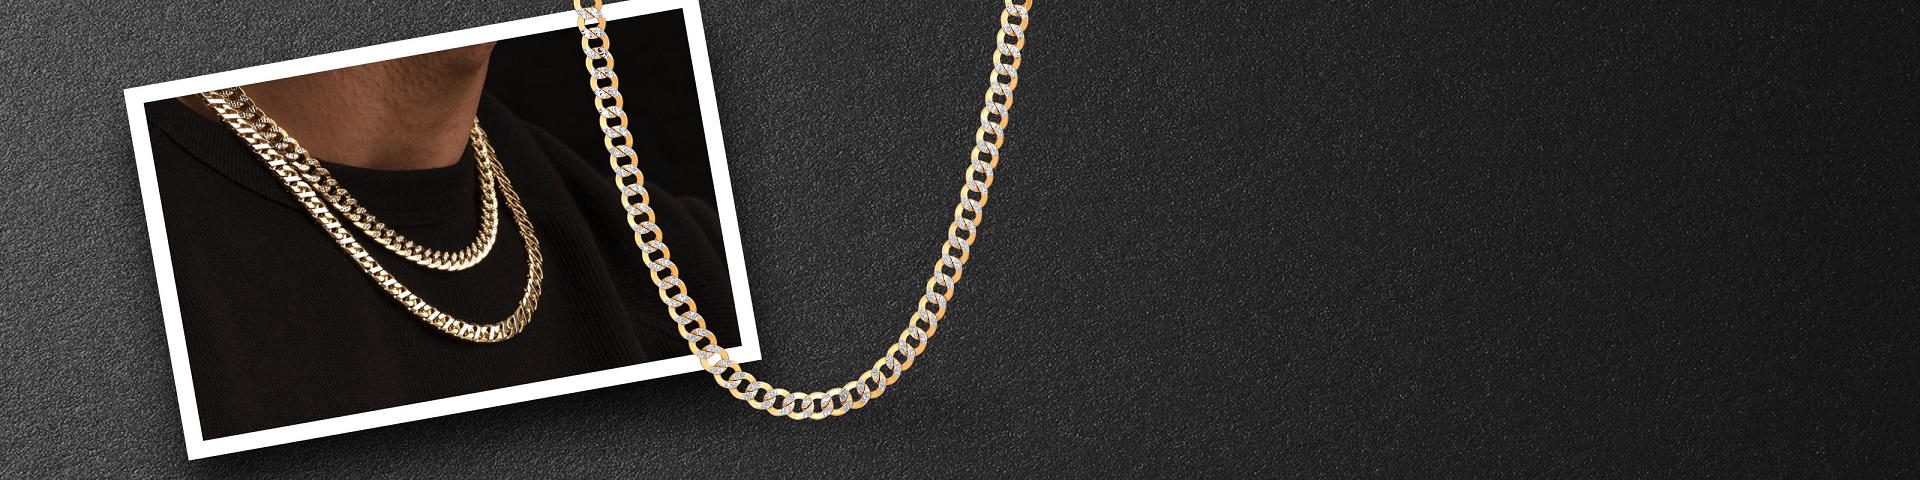 Man wearing a yellow gold chain necklace from Jared. Shop all men's jewelry.